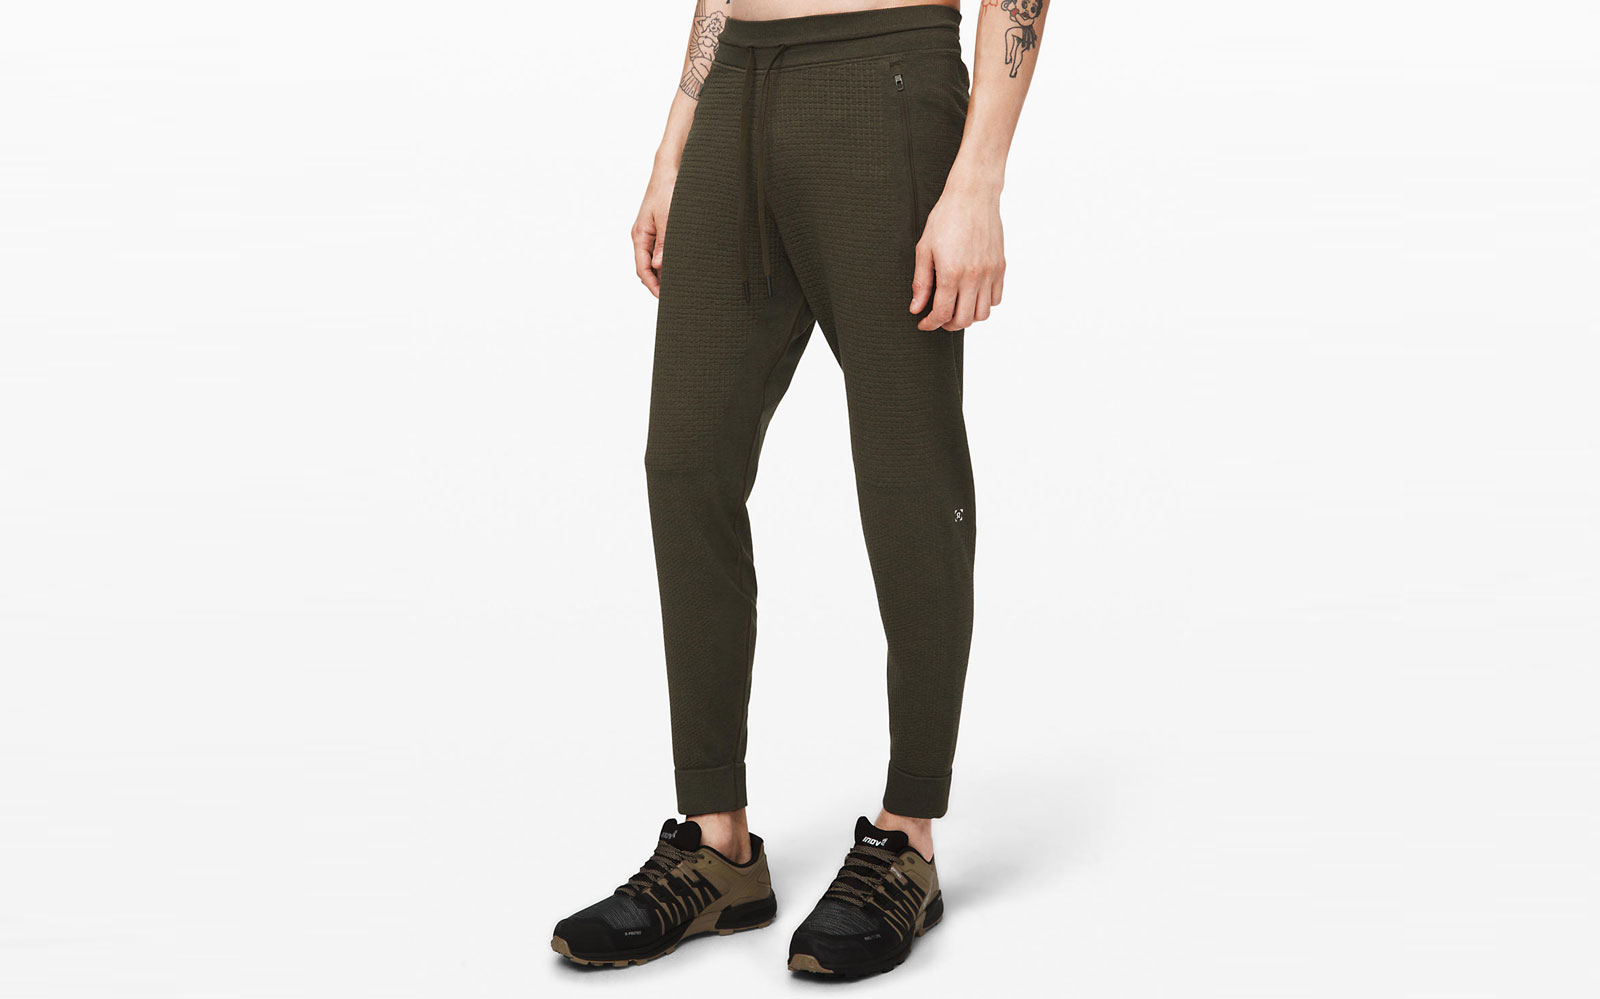 Dark Green Men's Jogger Sweatpants